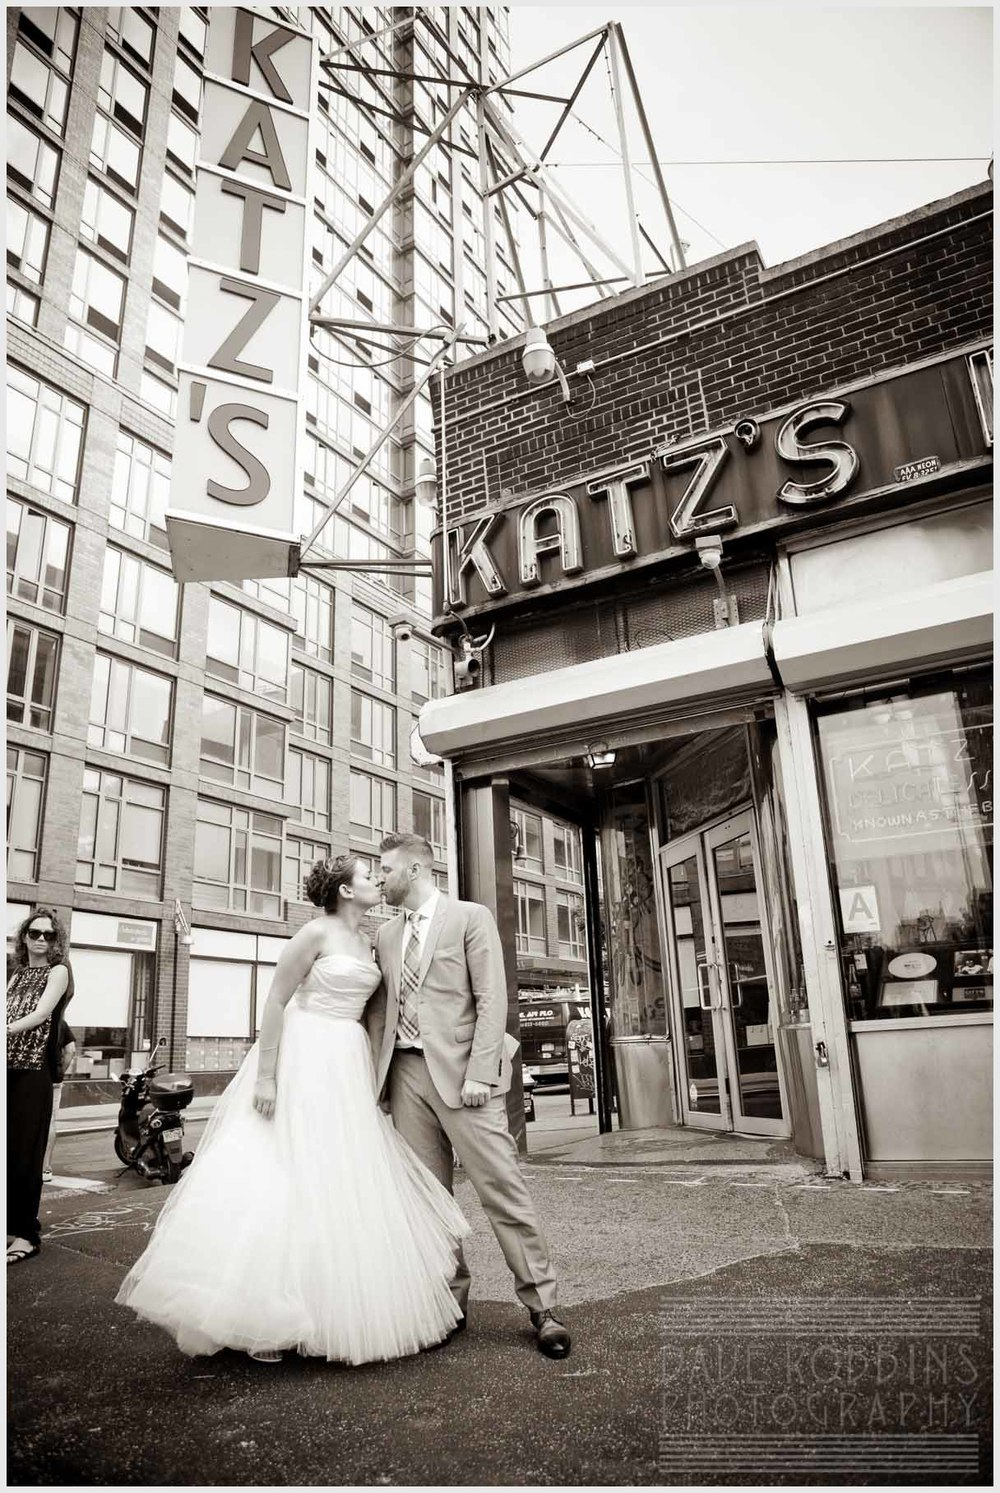 katz-deli-wedding-bride-groom